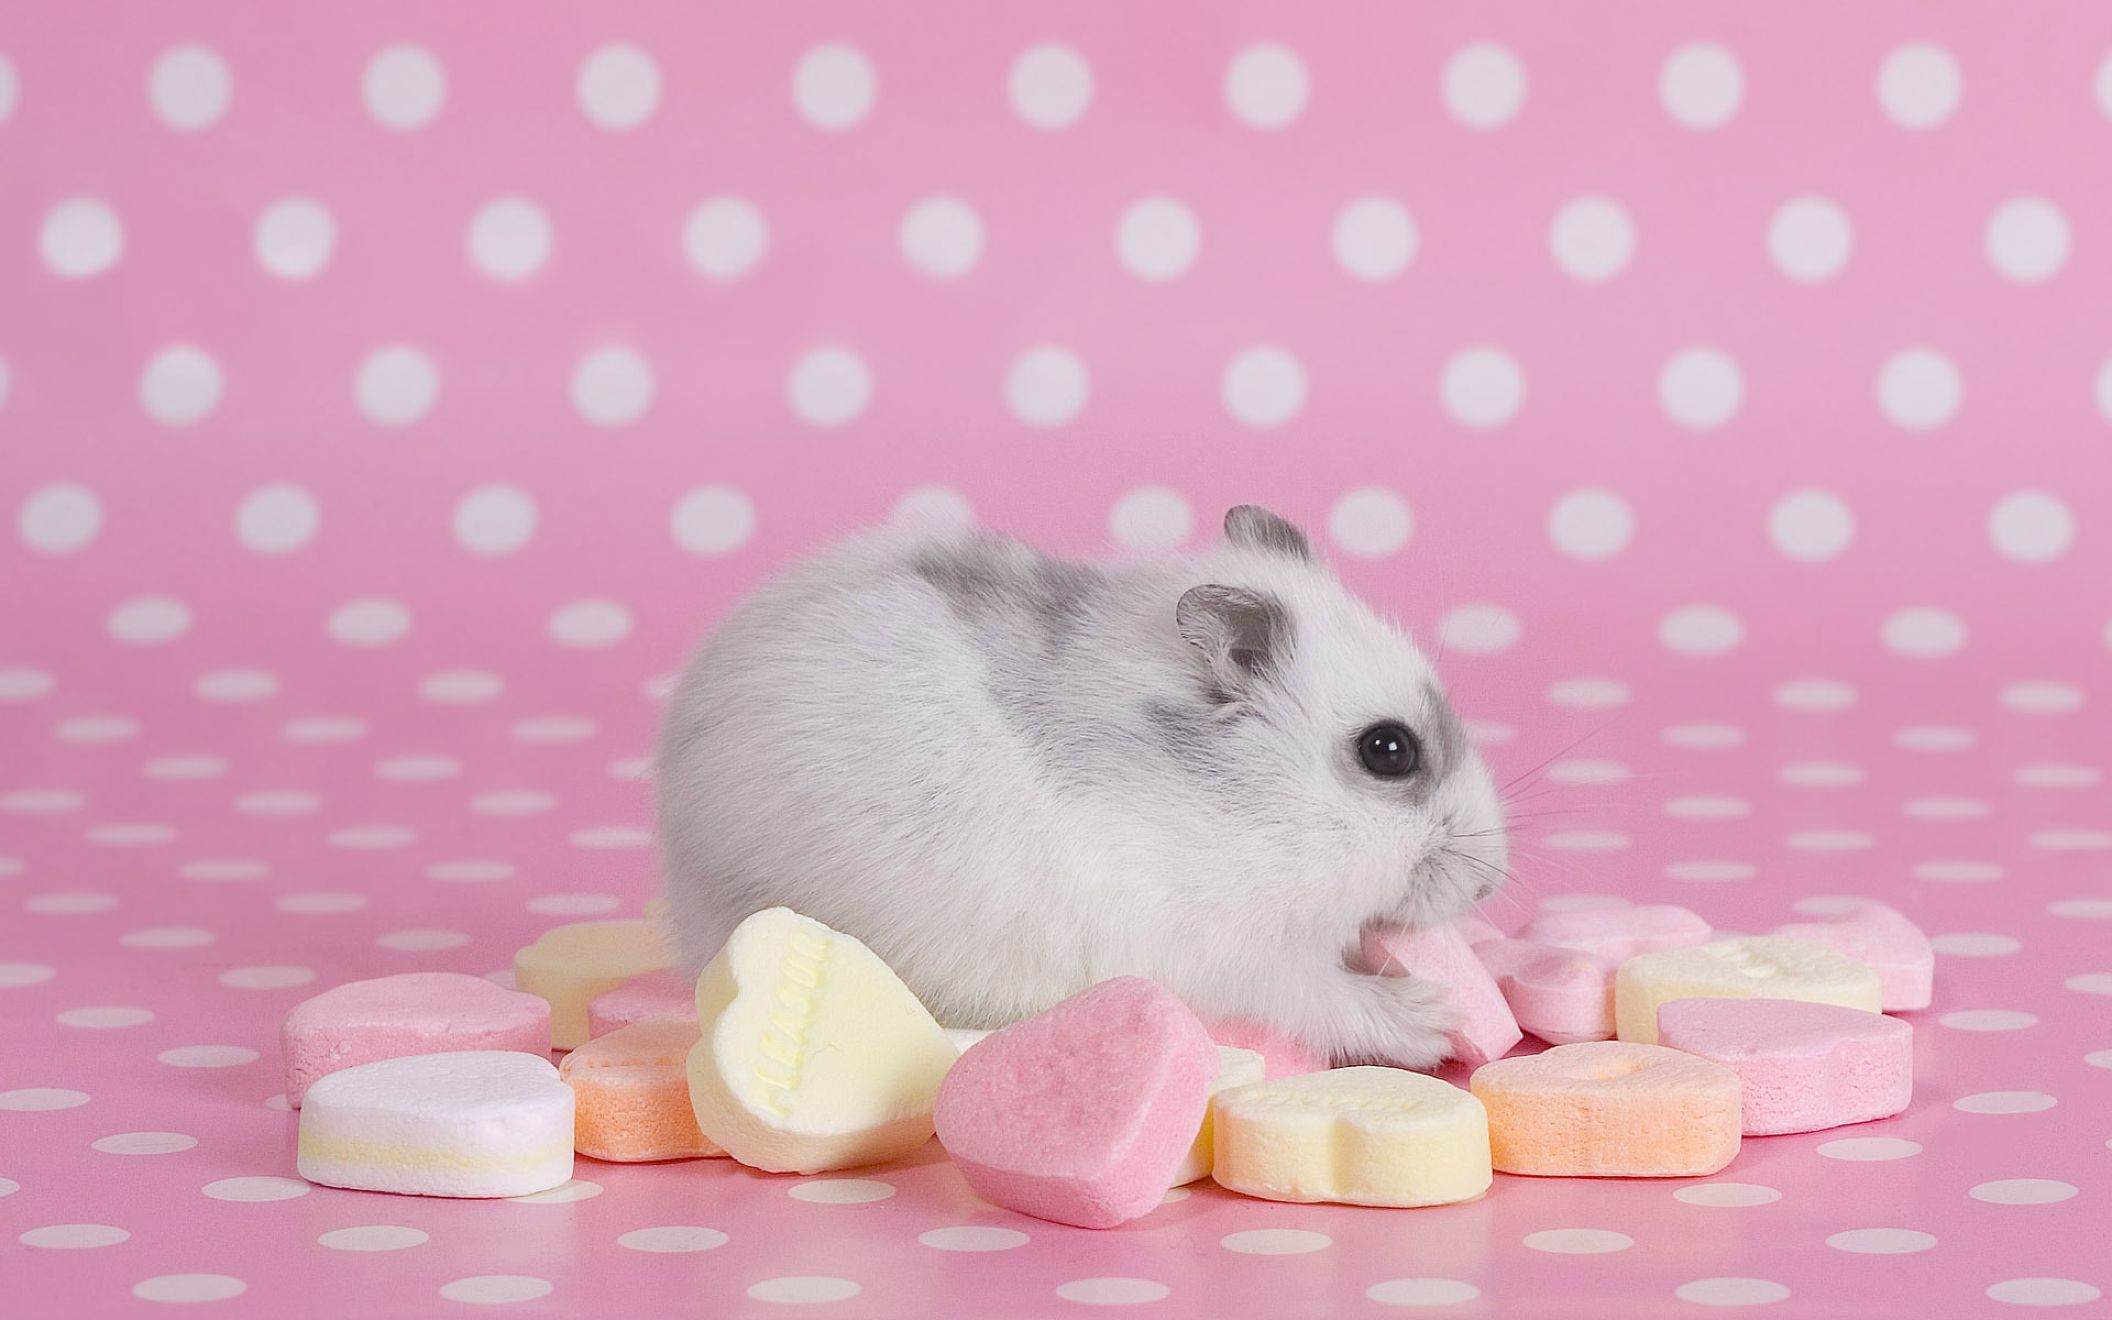 Download free HD Hamster Desktop Pink Wallpaper, image